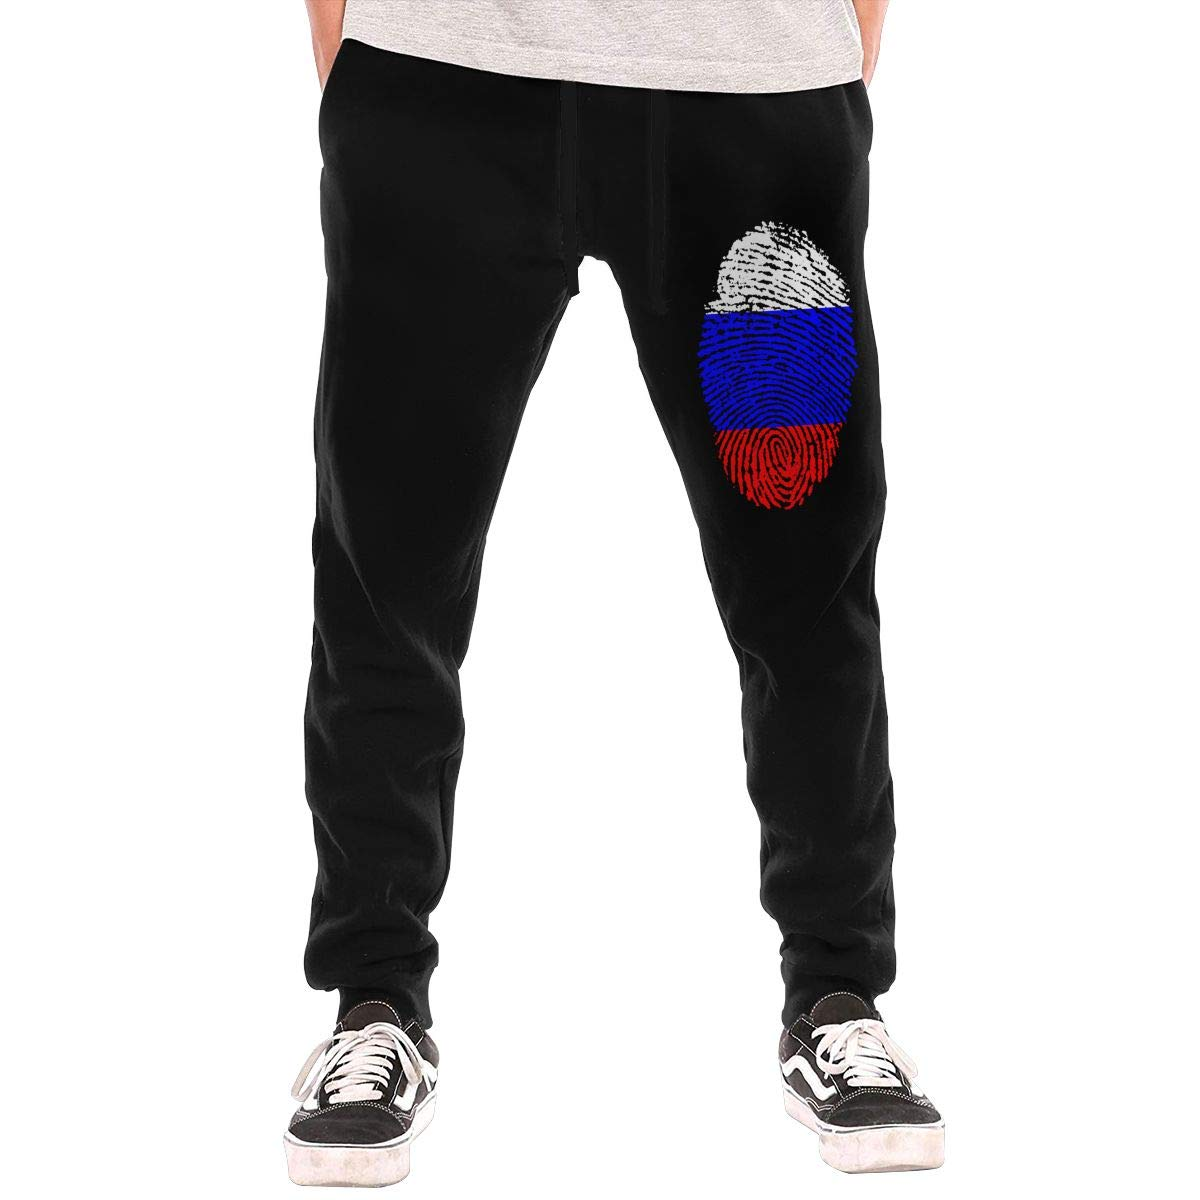 Russia Casual Joggers Lounge Pajama Gym Workout Pants Casual Long Pants for Men